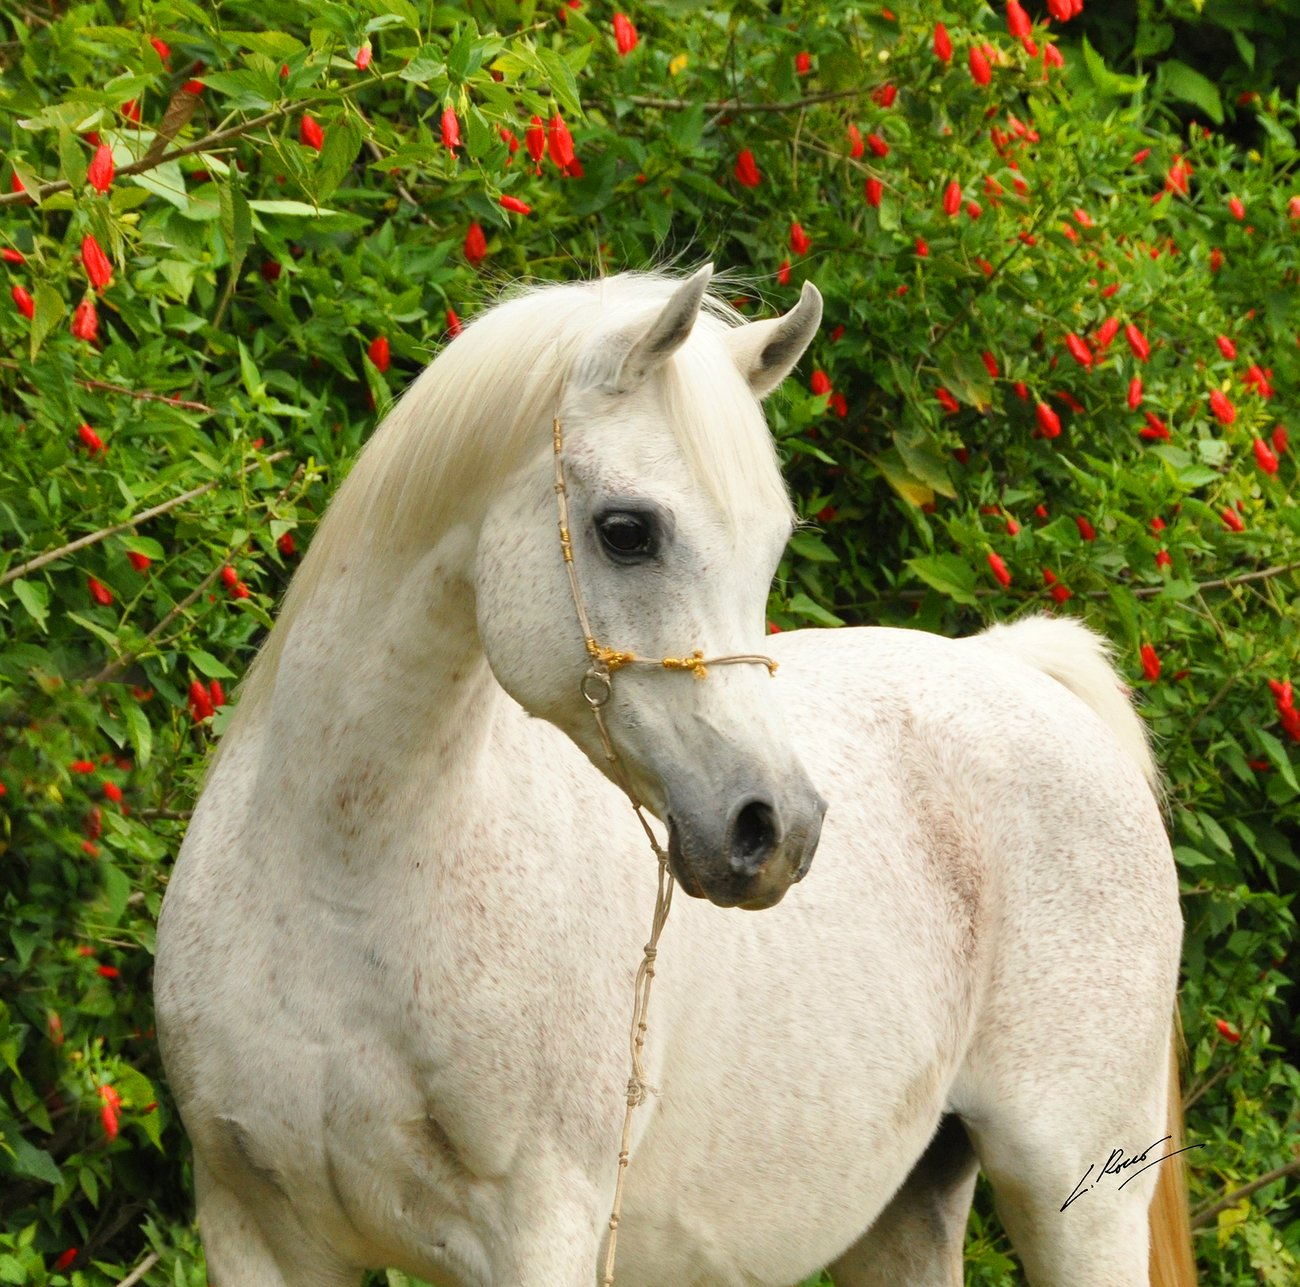 Jullye El Ludjin (Ludjin El Jamaal – NV Justa Dream), probobaly one of the most special mares ever bred by Lenita Perroy. She appears twice in the pedigree of El Jahez WH, by Luiz Rocco